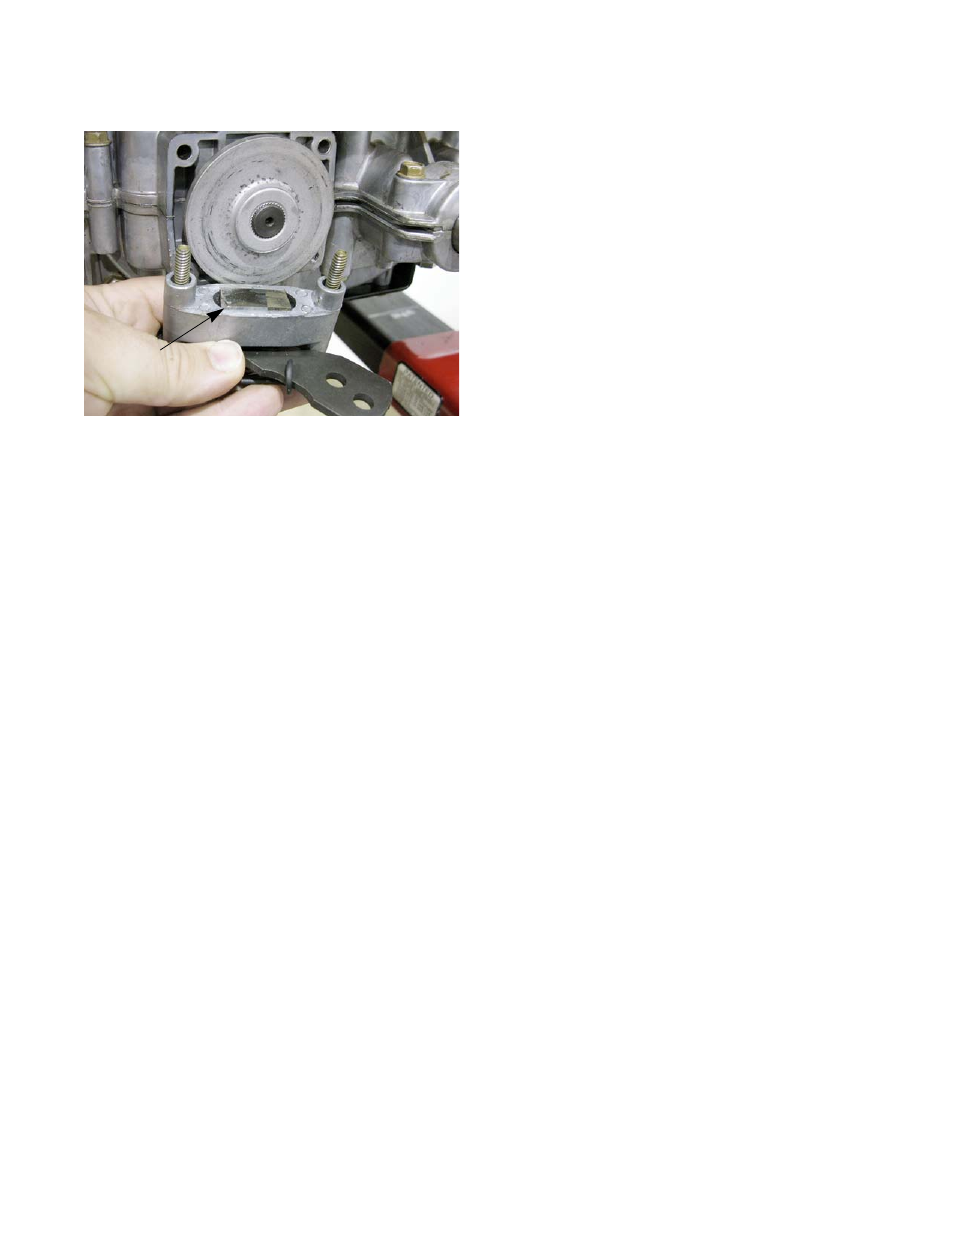 cub cadet rzt-s zero electric user manual | page 31 / 156